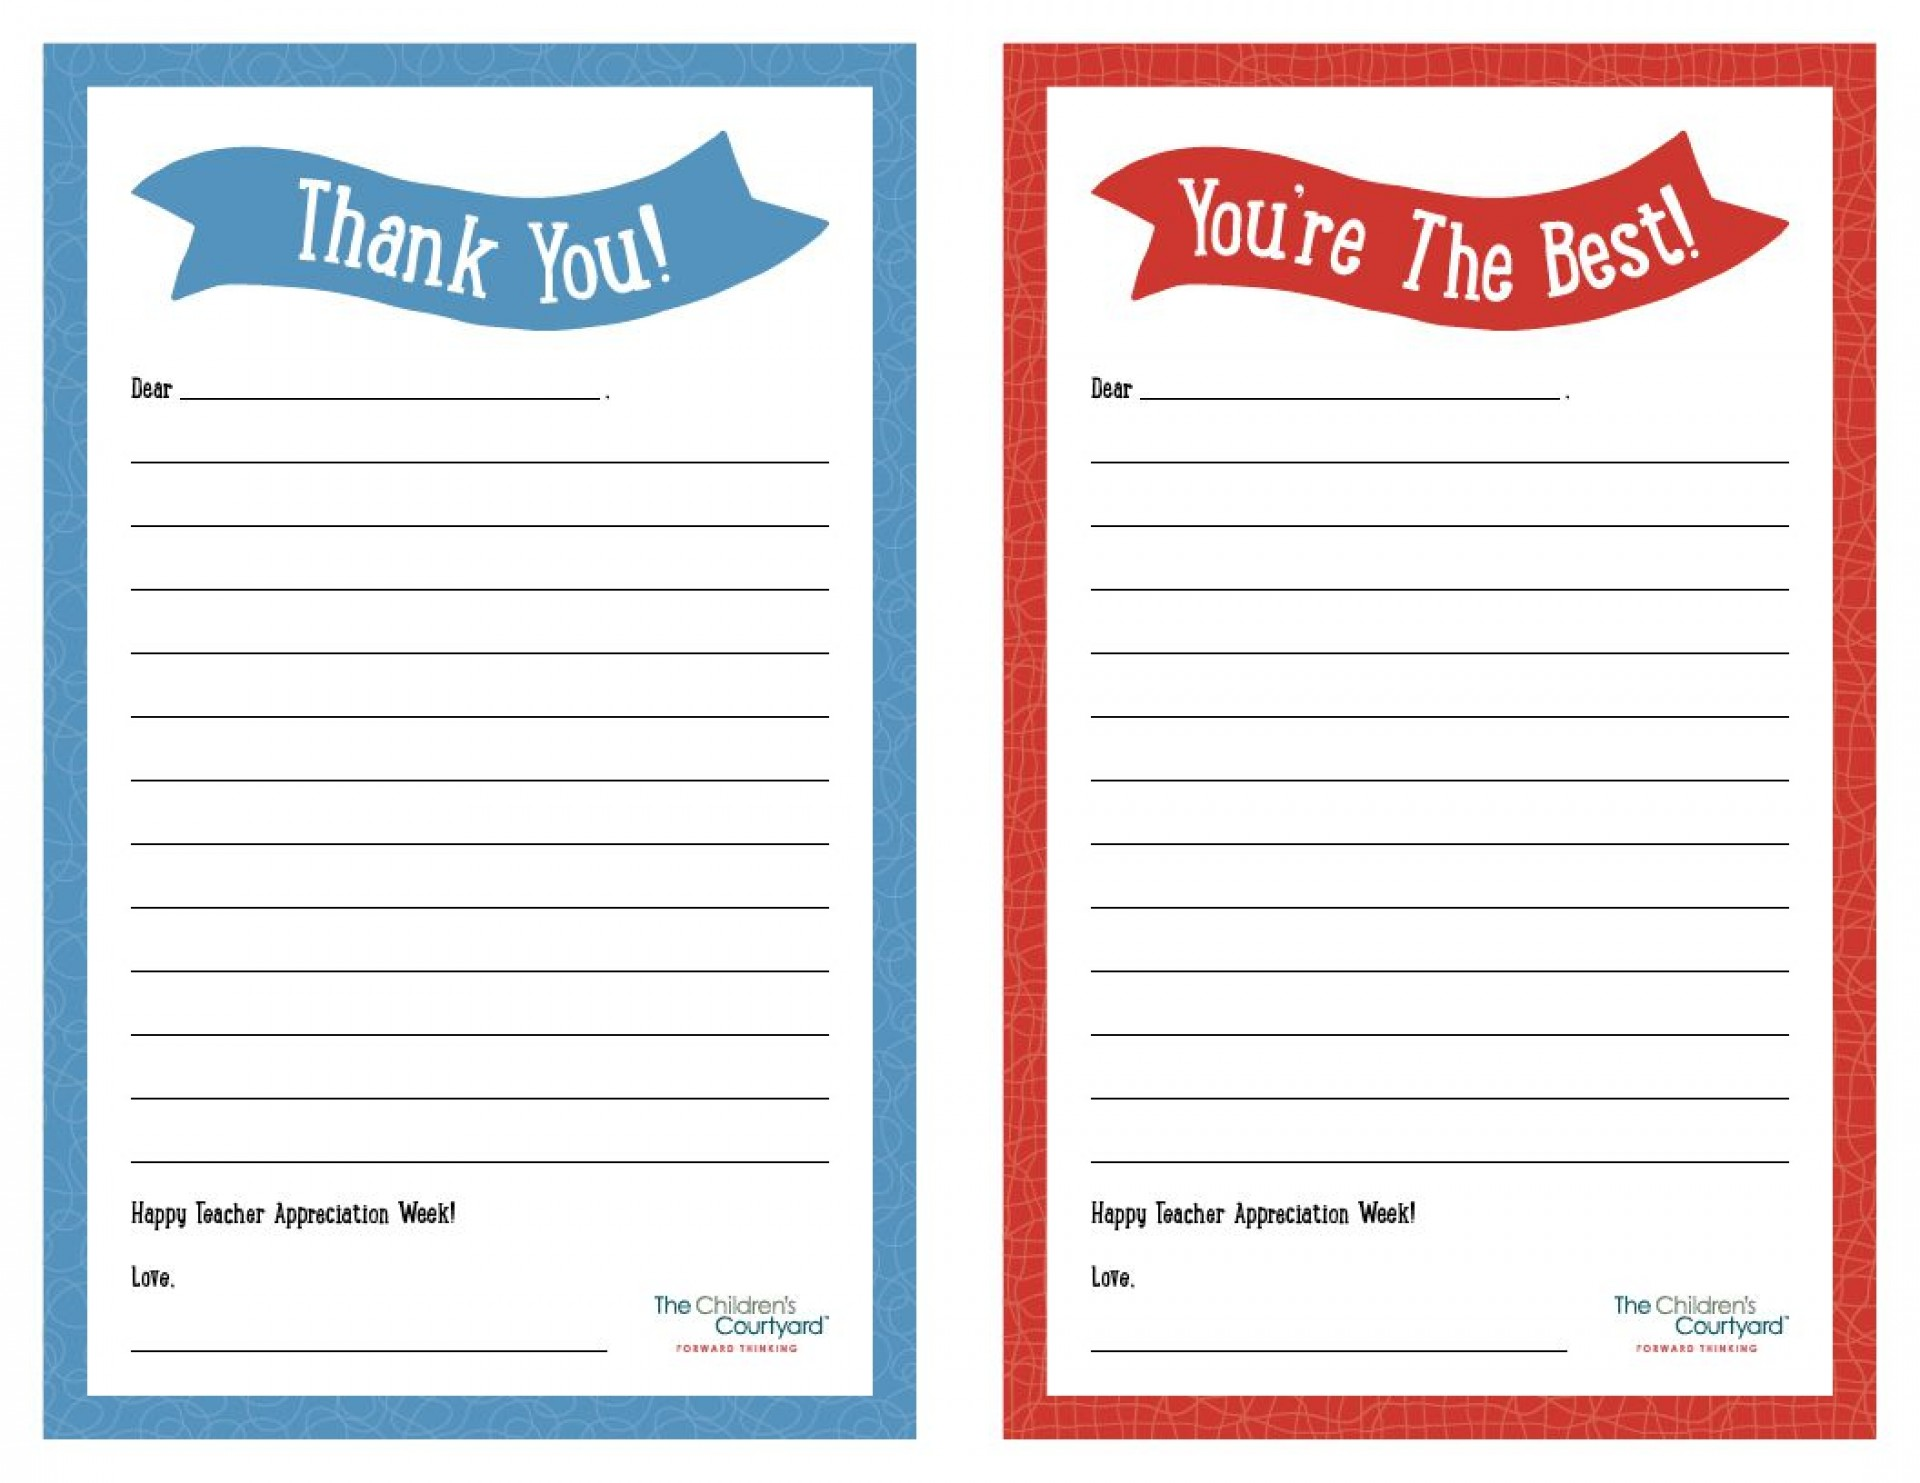 007 Unbelievable Thank You Note Template Printable Highest Quality  Letter Baby Card Word1920